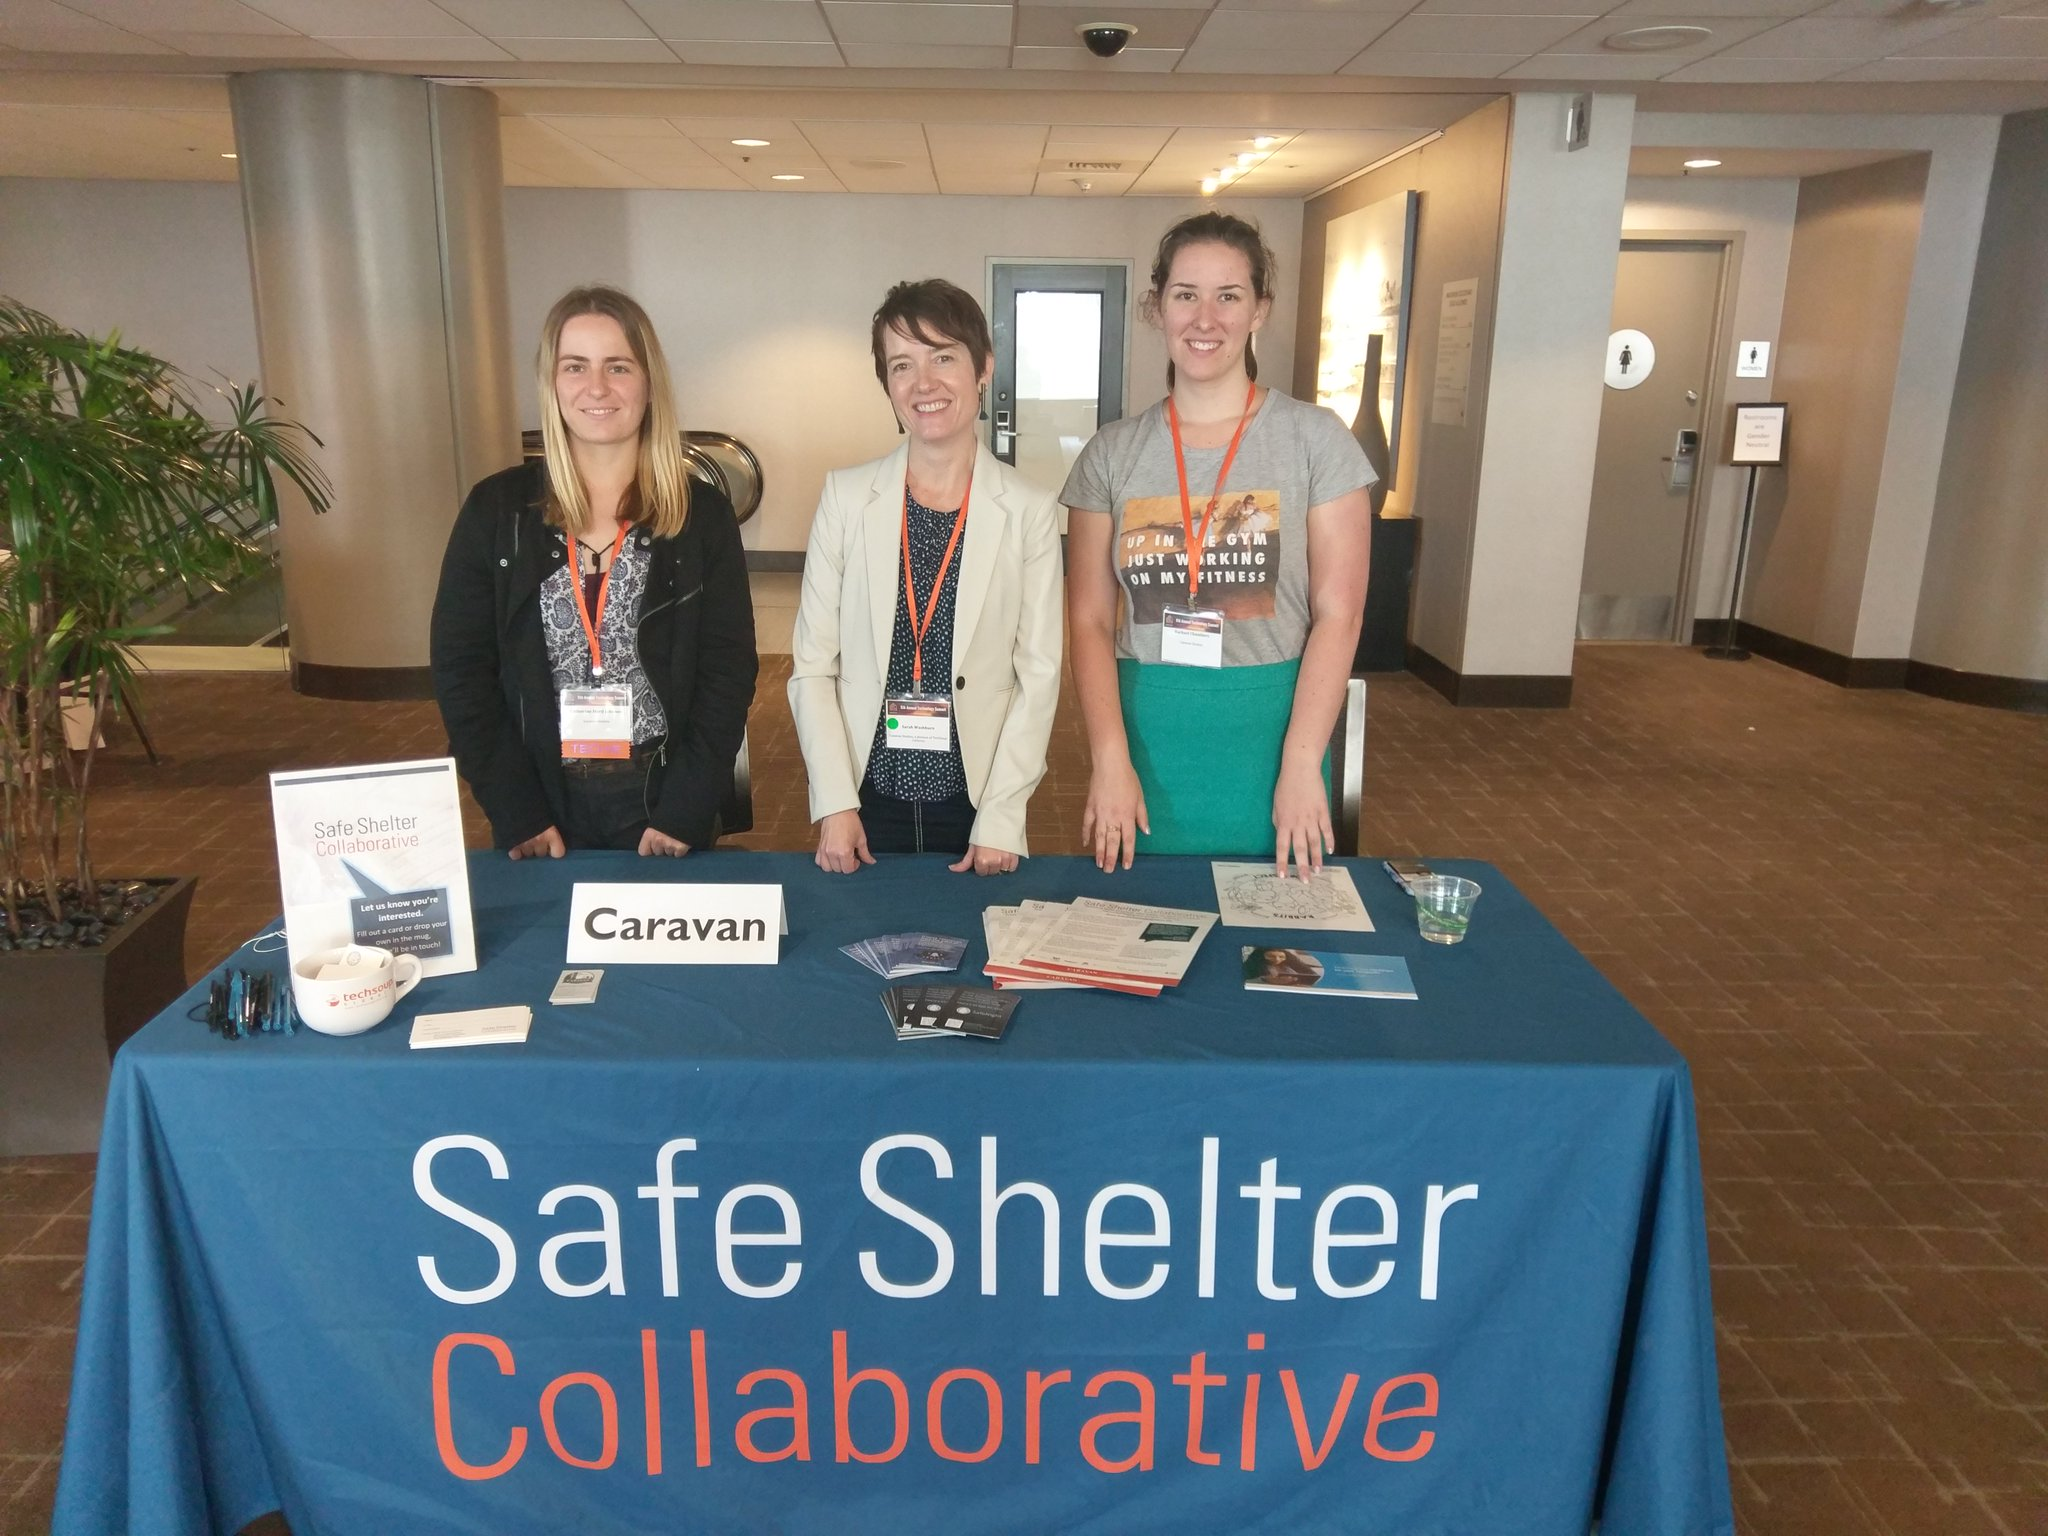 Our team is at @nnedv #techsummit17 representing #SafeShelterCollaborative - tweet at @swashtalks to learn more! https://t.co/I43pdchdGN